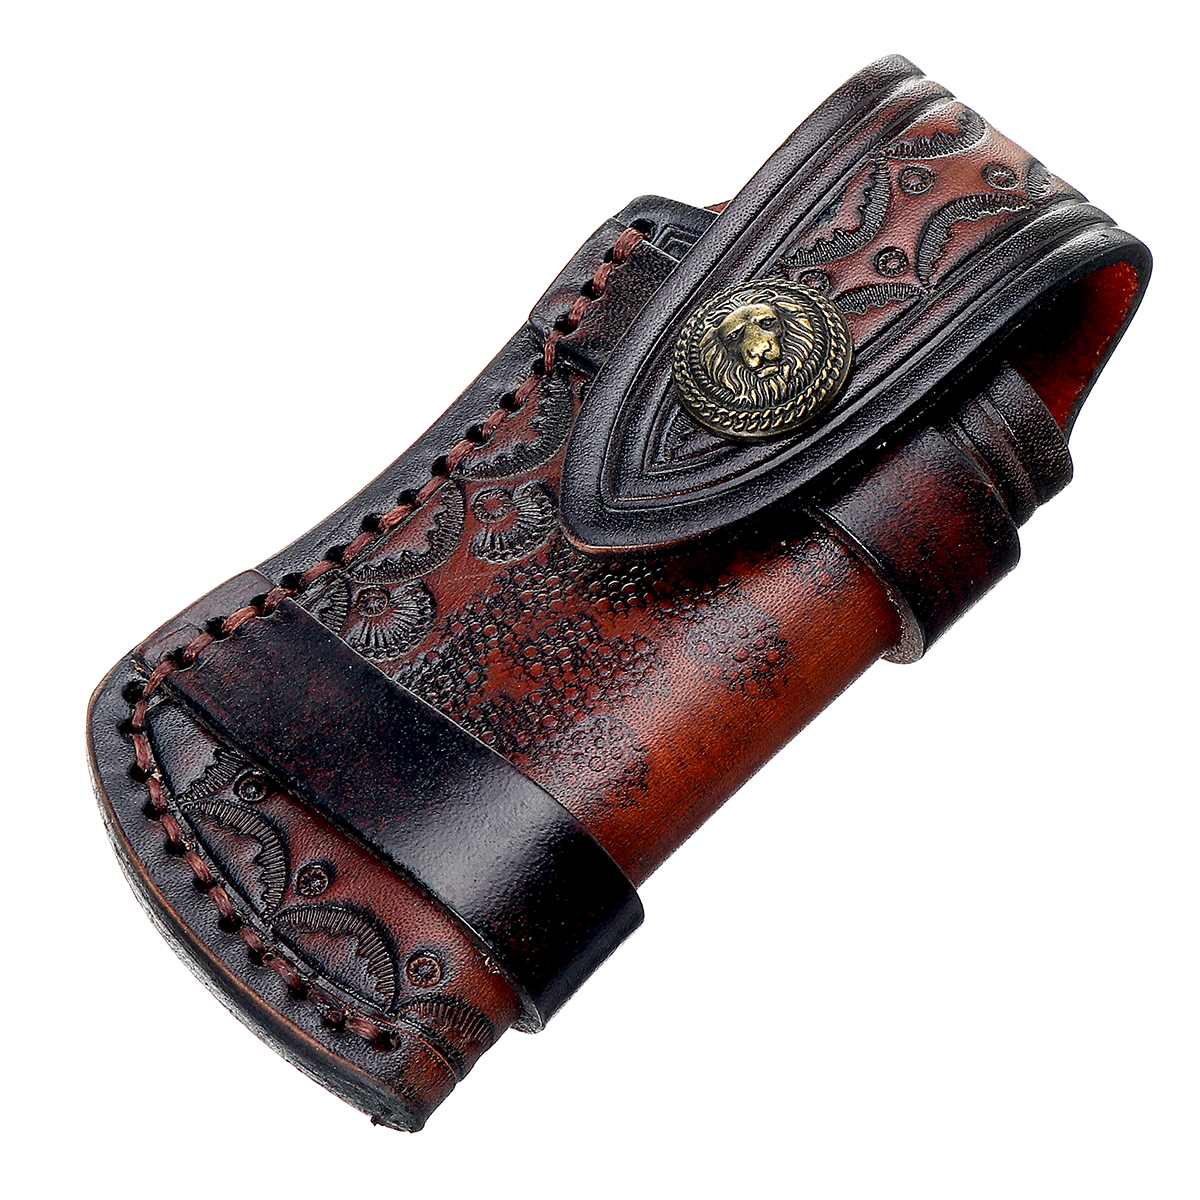 Handmade Knife Leather Sheath With Waist Belt Buckle Pocket Cosplay Costume Decoration Kit For Foldable Cutter Tools Accessories